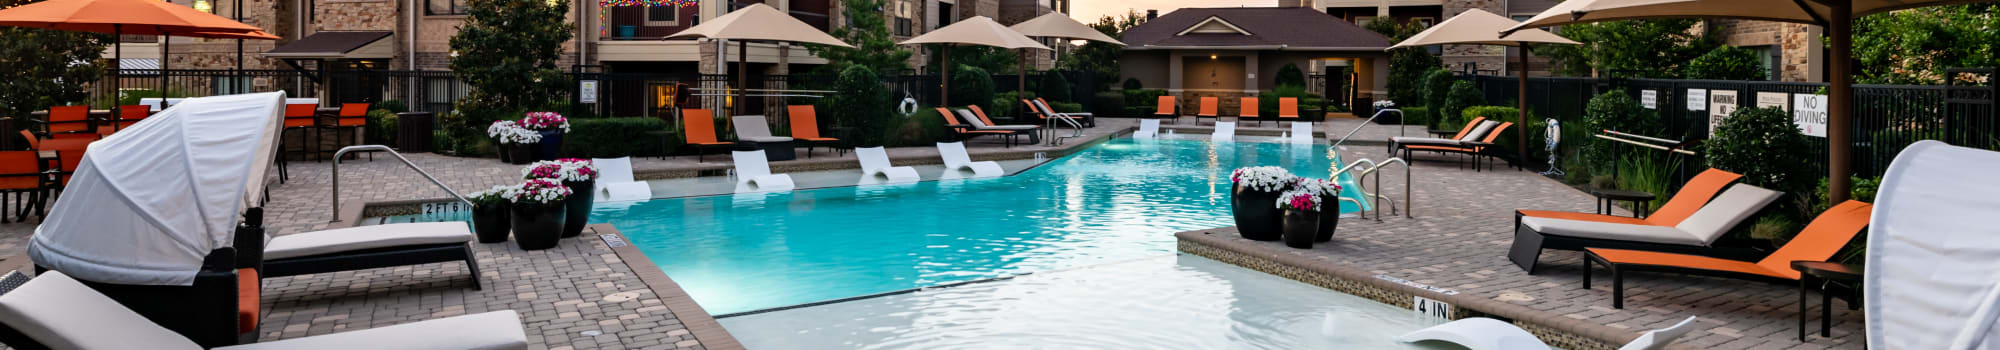 Amenities at The Sovereign in Fort Worth, Texas